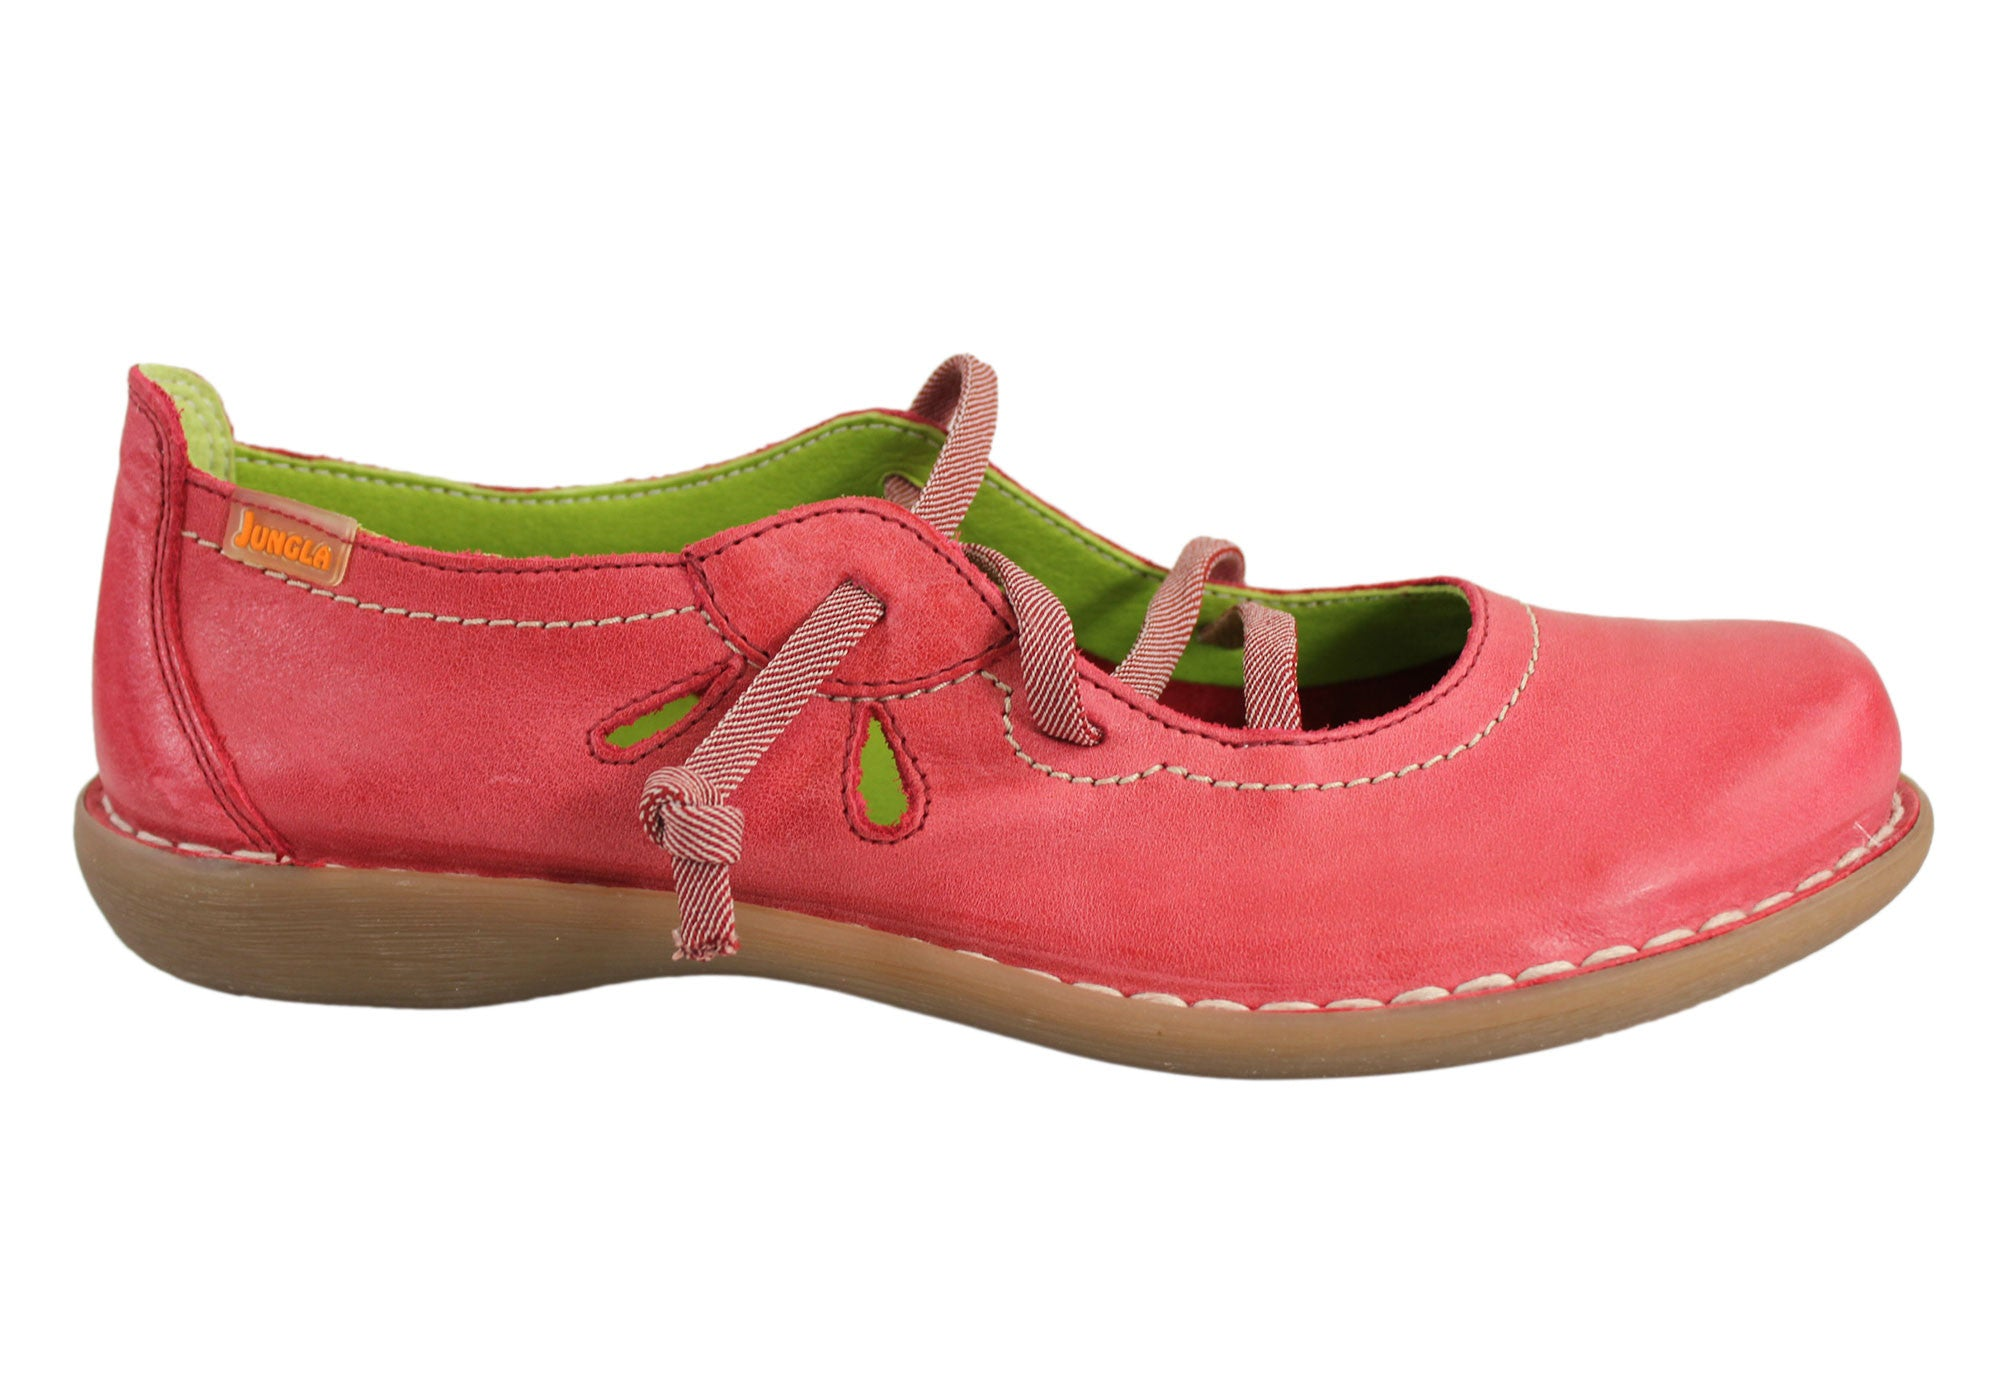 fbe95394c97a0 Jungla 5120 Womens Soft Leather Comfortable Casual Shoes Made In Spain    Brand House Direct